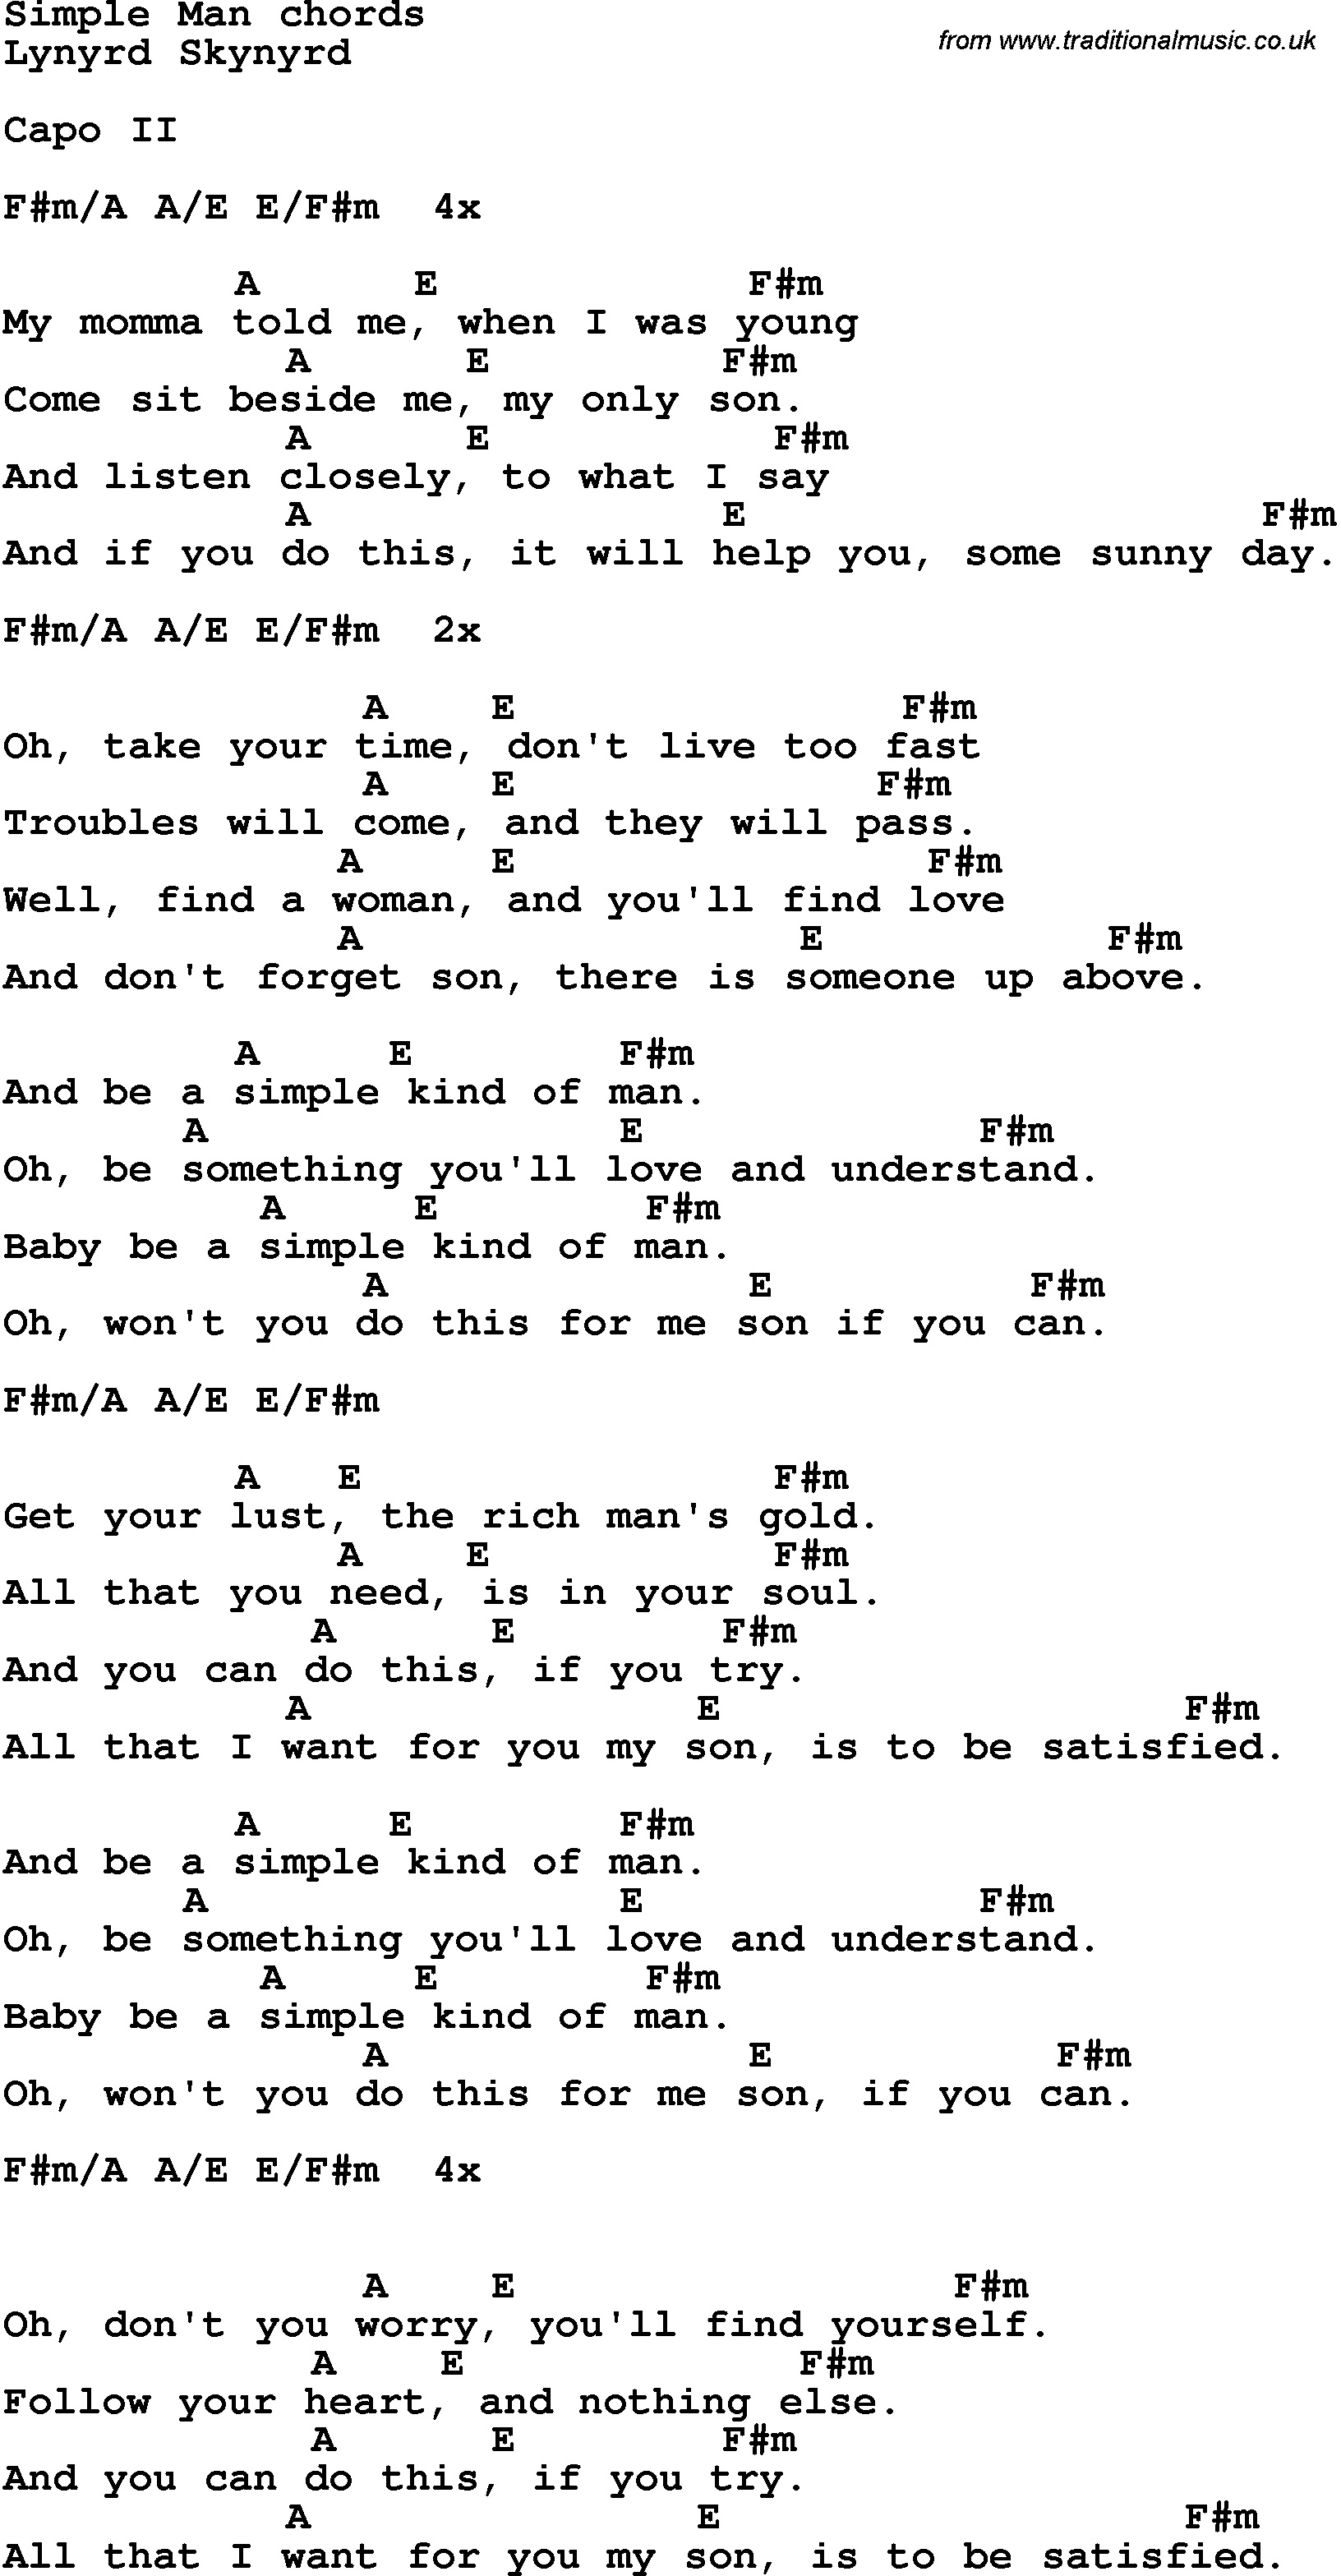 Simple Man Chords Song Lyrics With Guitar Chords For Simple Man